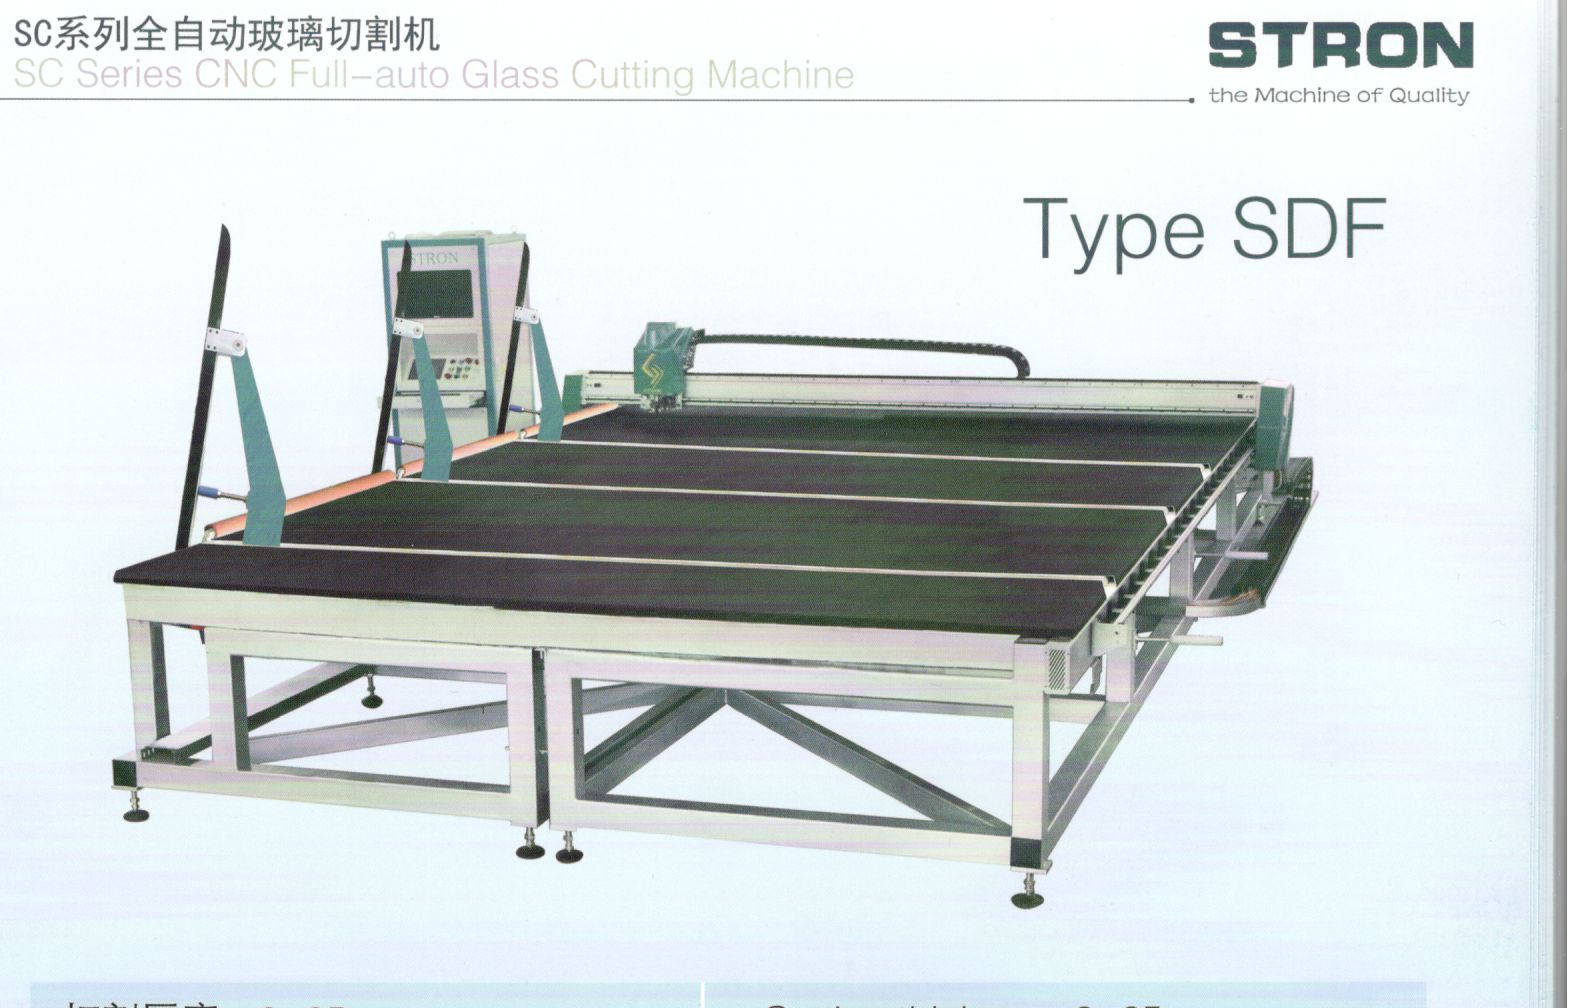 Glass Cutting Machine cutter cutting Loading breakout